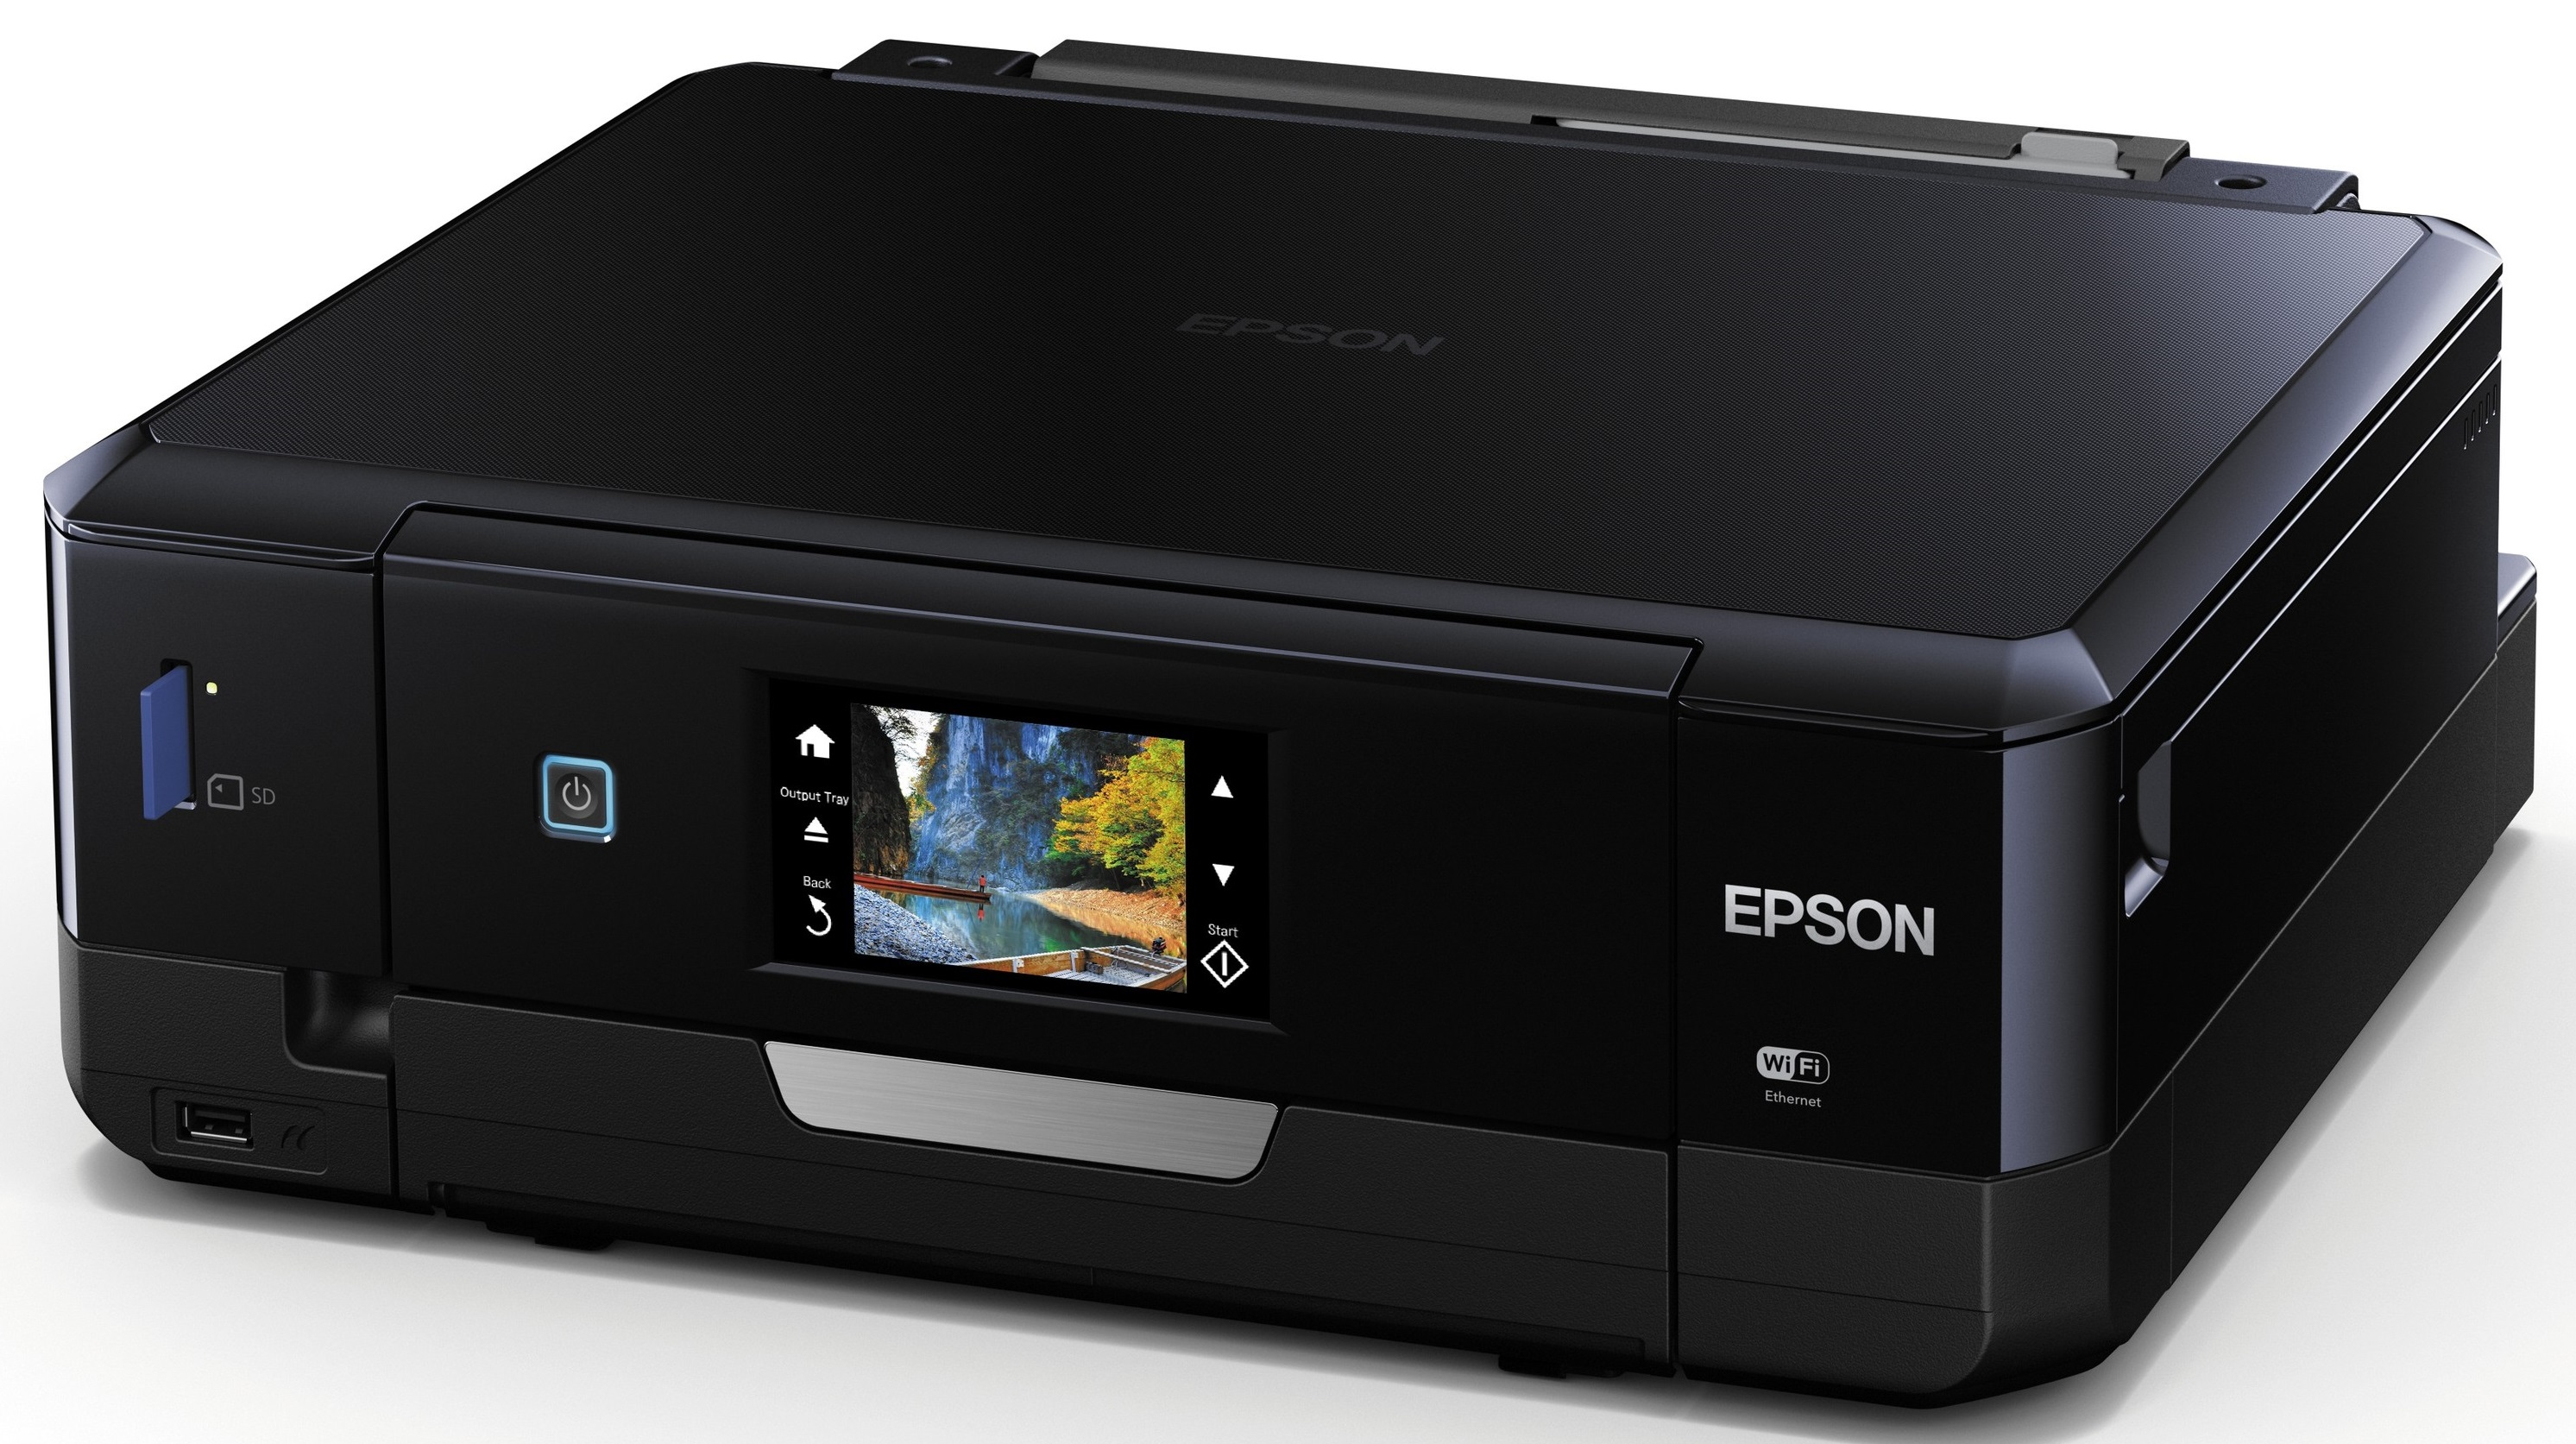 Best printer 2018 the best inkjet and laser printers for office or 5 epson expression photo xp 760 the best photo printer under 200 reheart Image collections